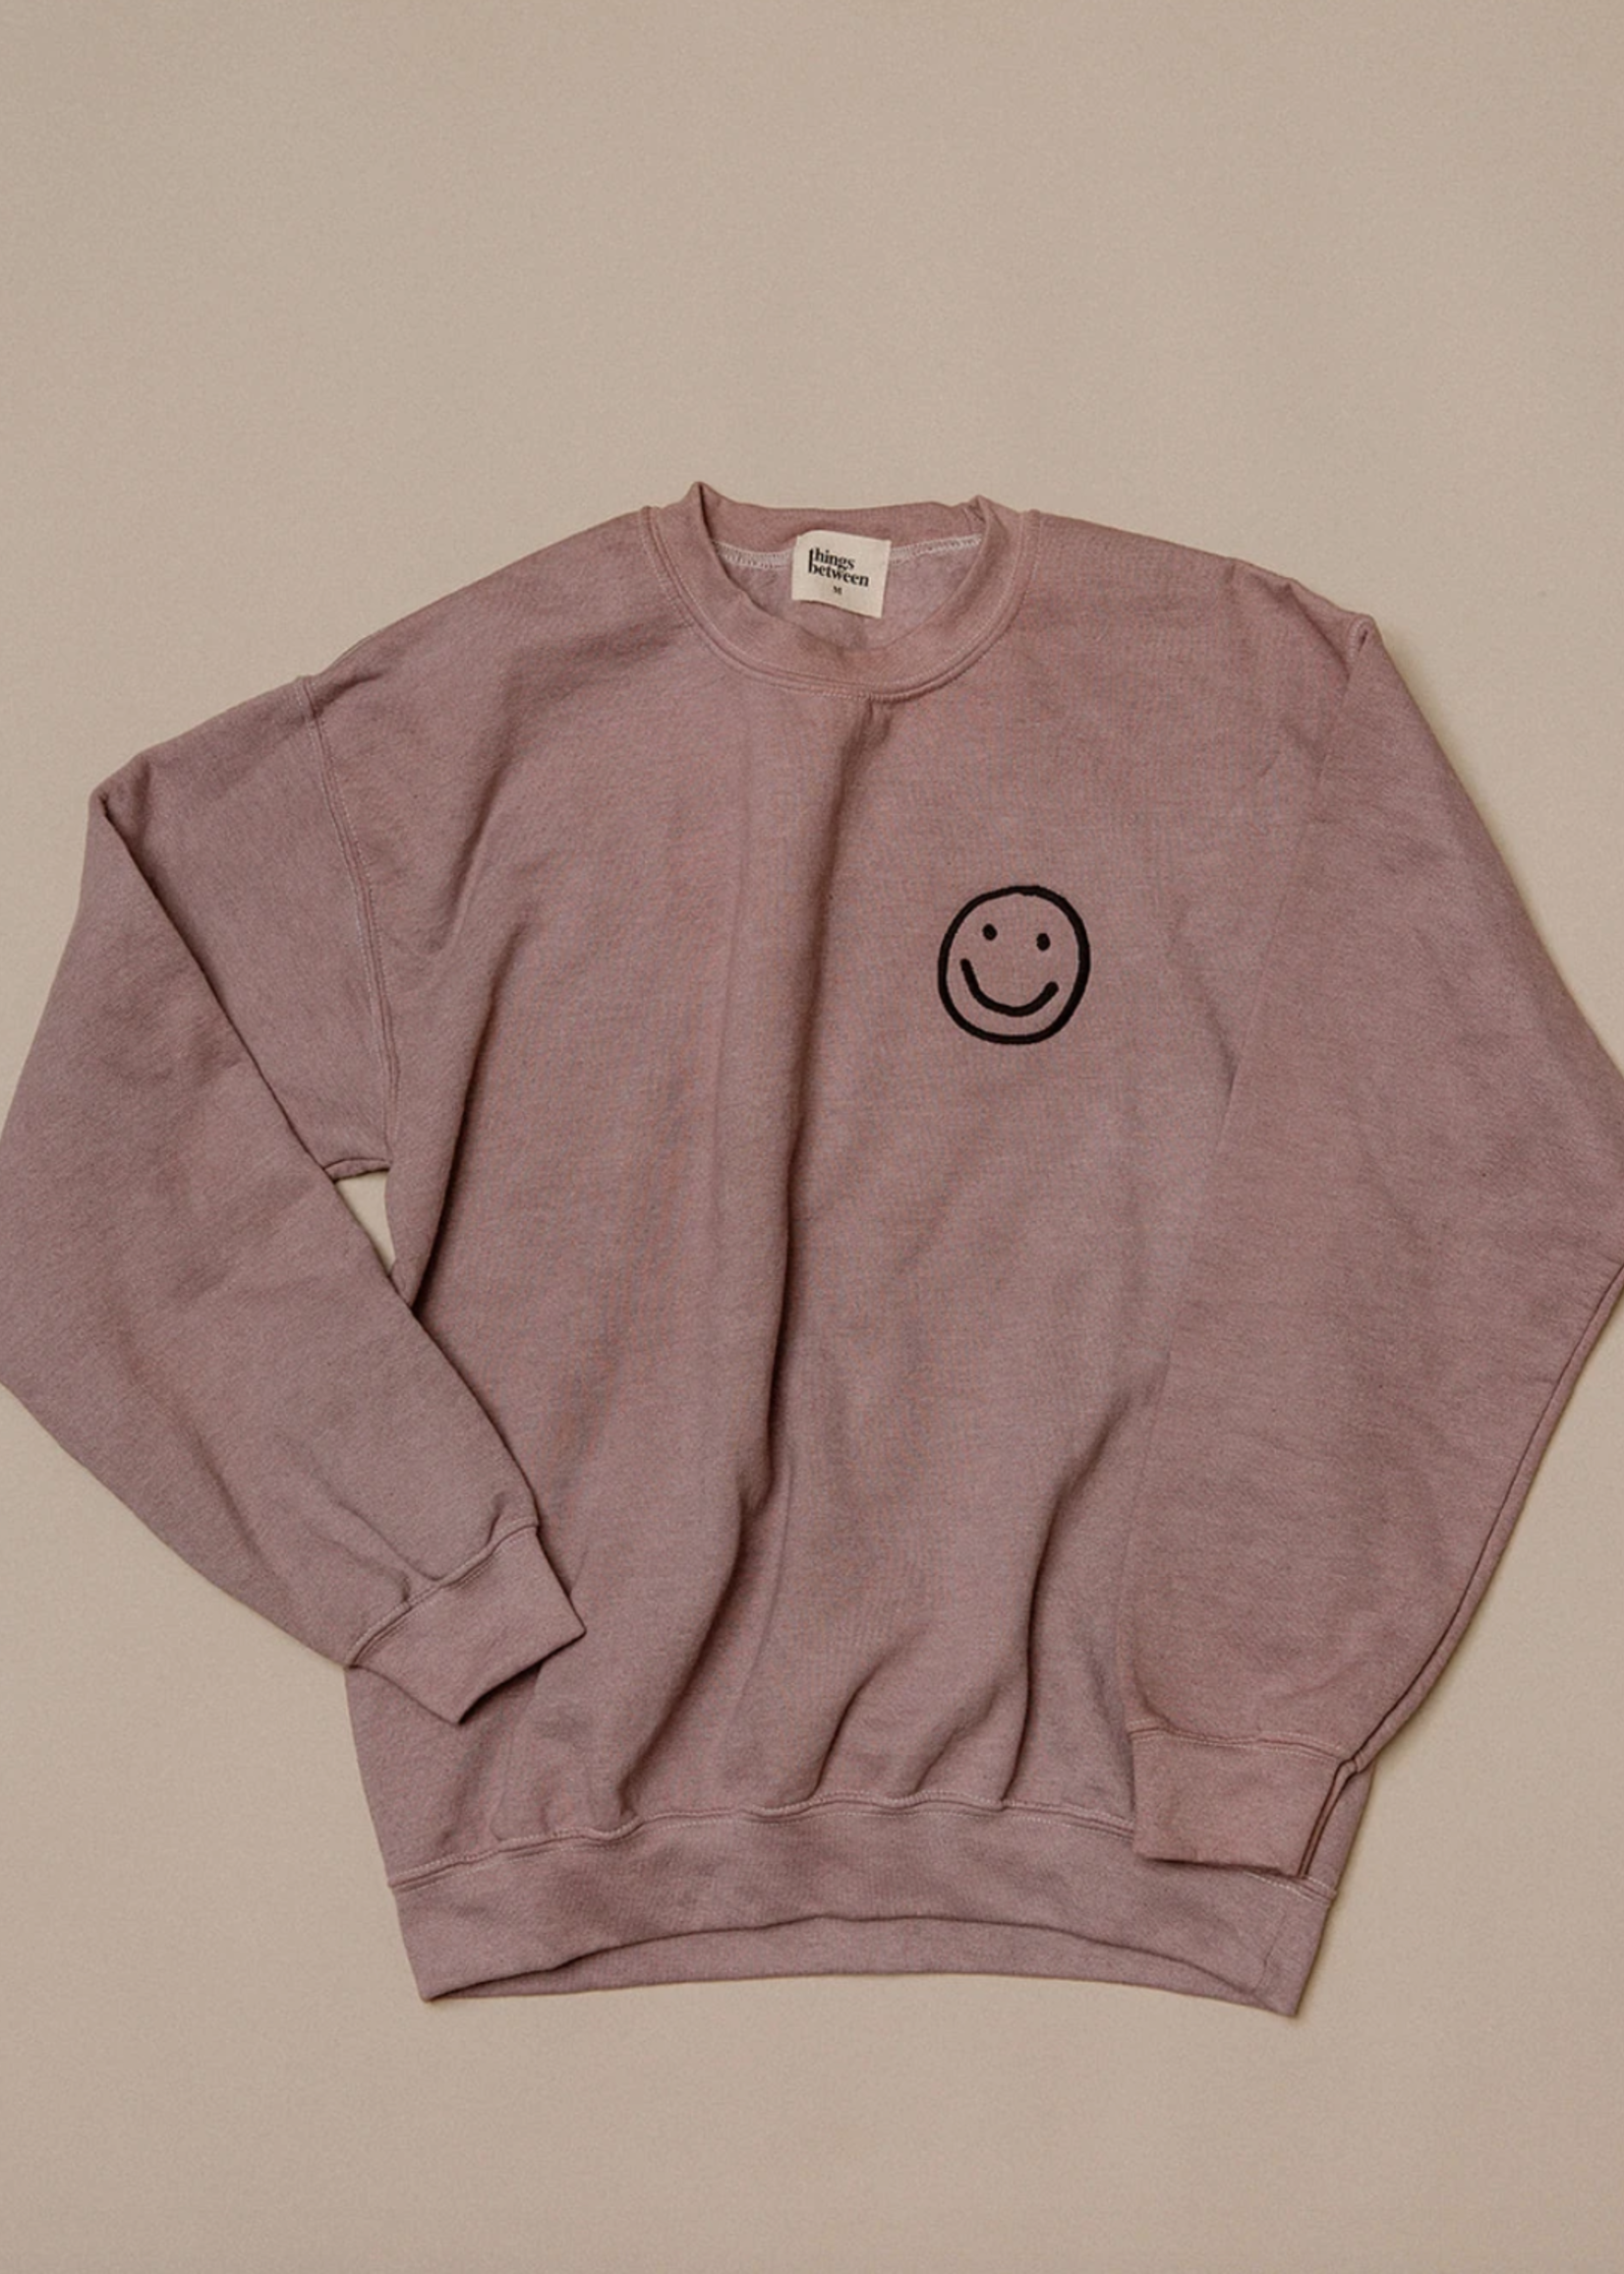 the things between the things between smile crew neck